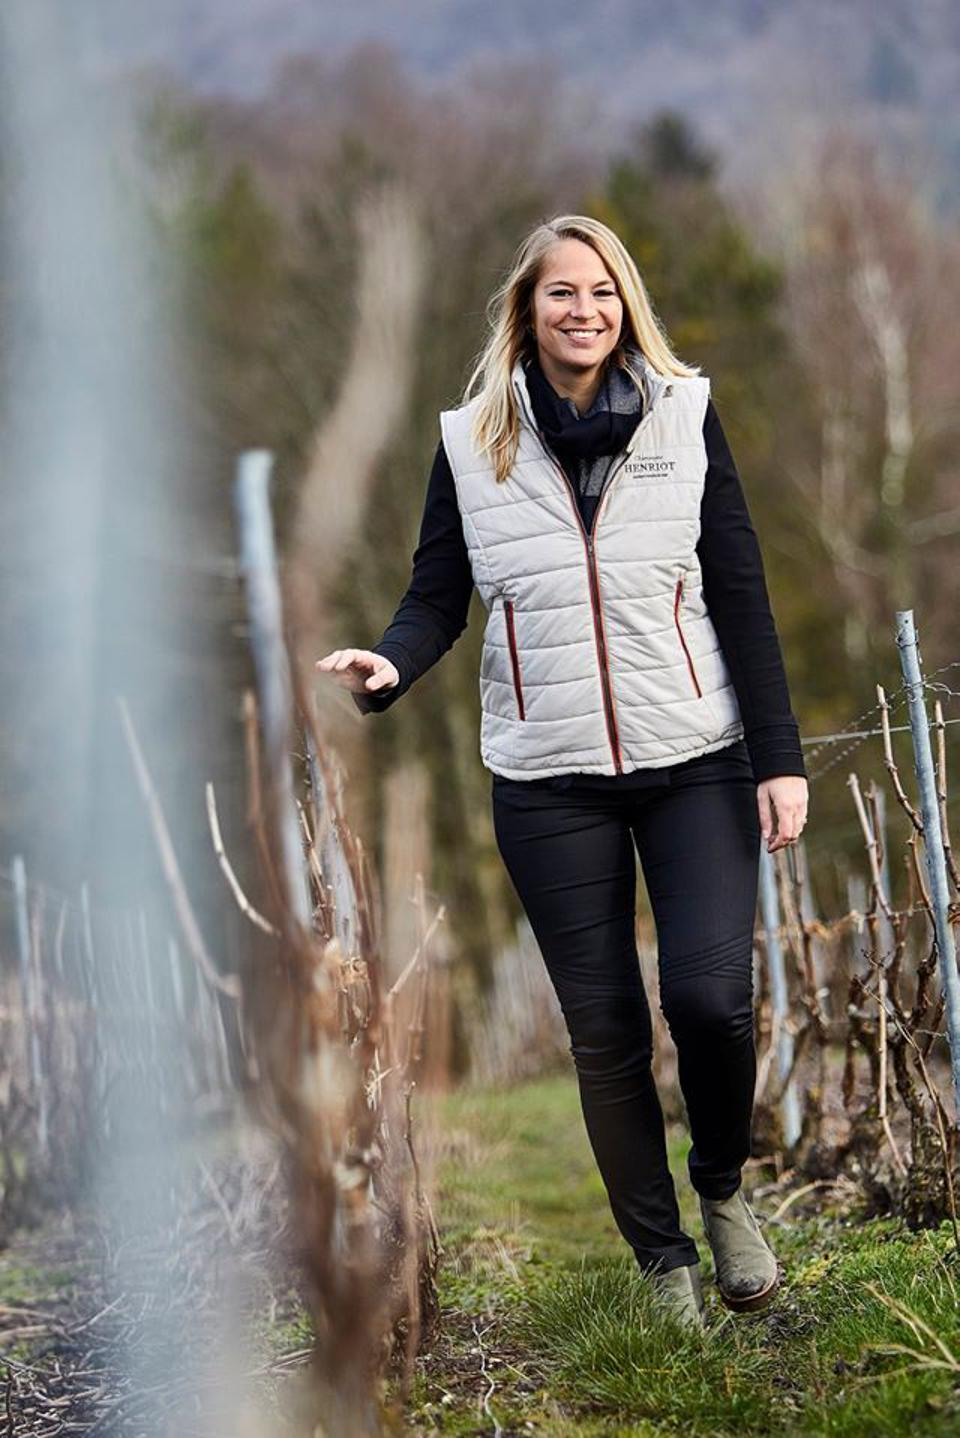 Alice Tétienne, cellar master at Champagne Henriot, in the Vineyards